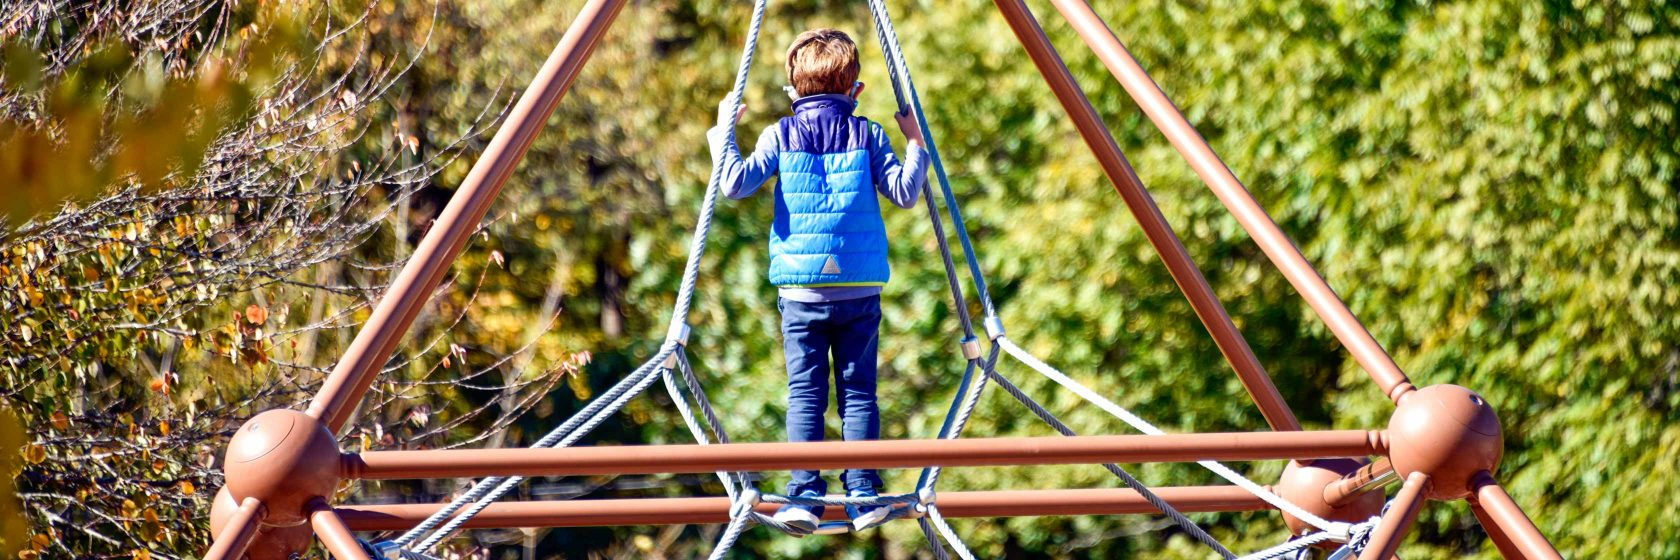 A student on a climbing gym at the school playground.